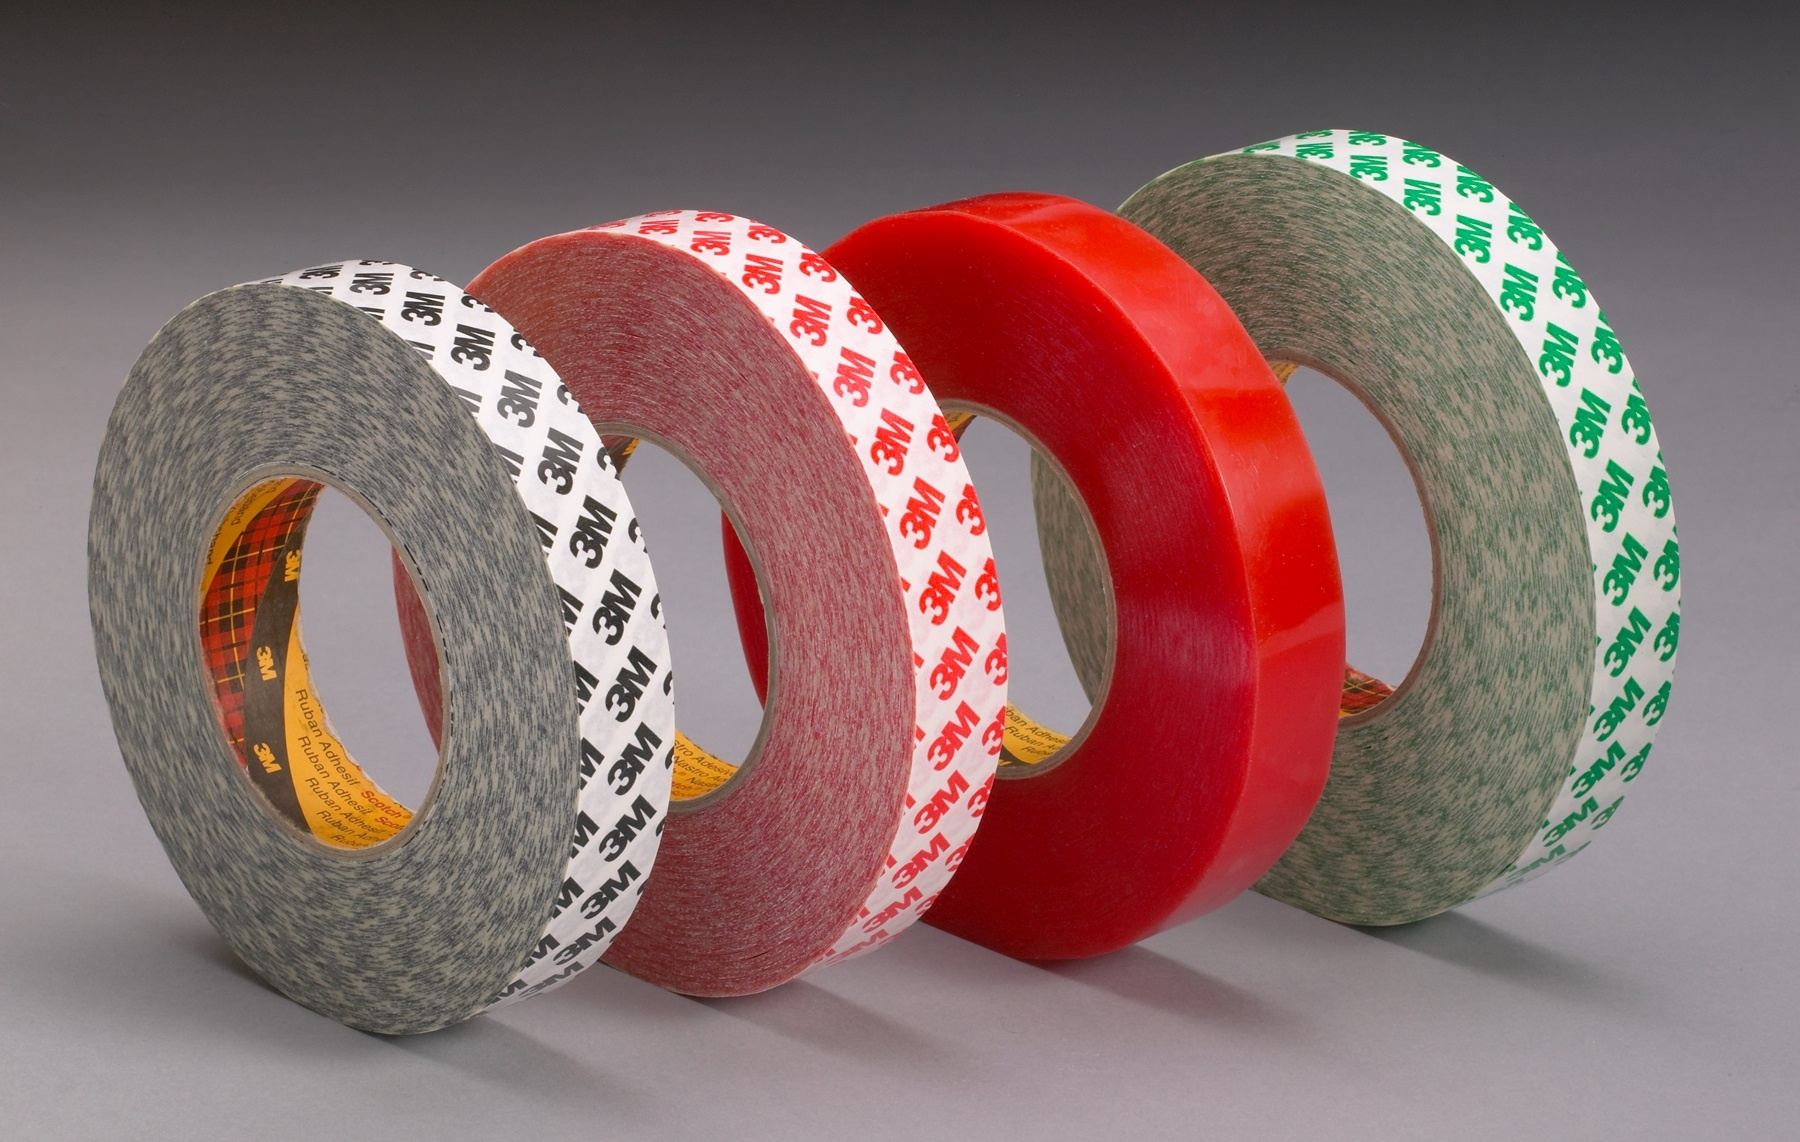 3M-double-coated-tapes-cut-at-Gleicher-9086-9087-9088-9088FL.jpg